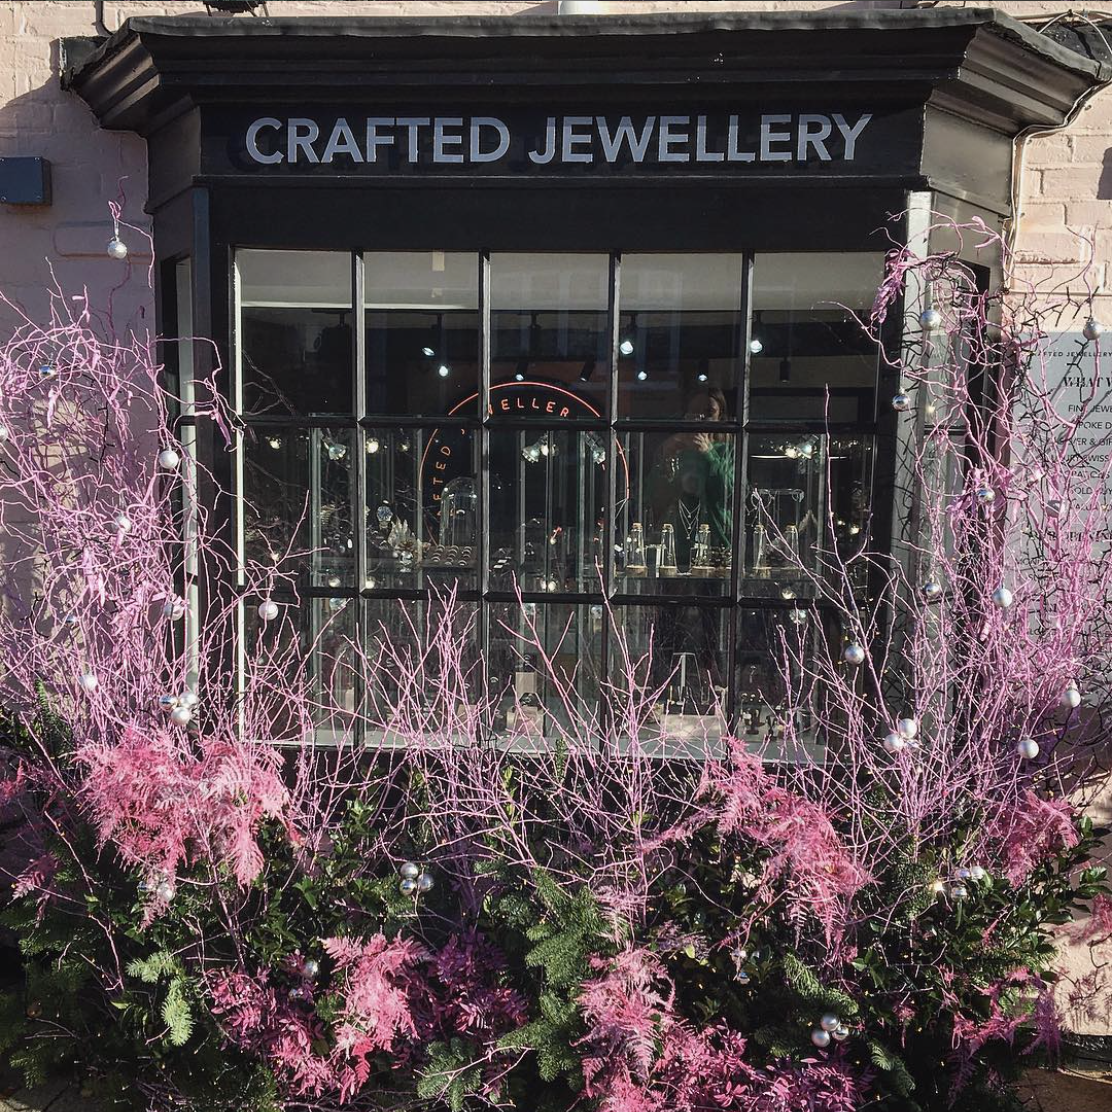 Crafted-Jewellery-Christmas-Display.png